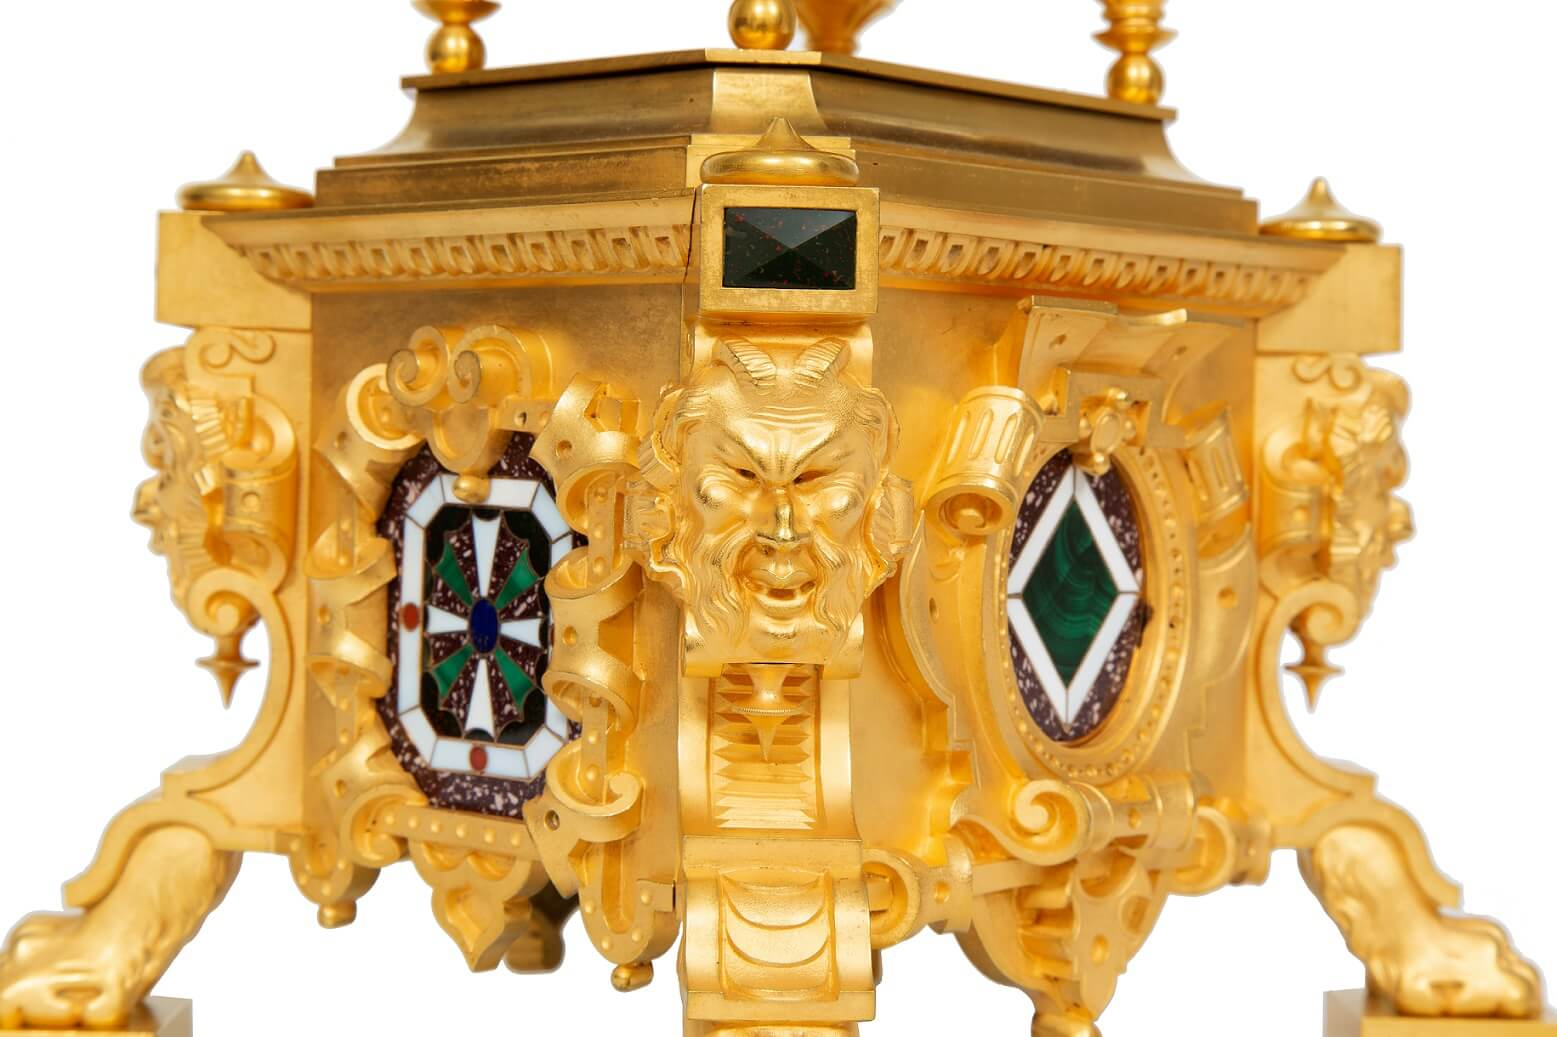 French-gilt-brass-carriage-antique-clock-travel-sculptural-exhibition-Paul Garnier-Paris-alarm-repeating-malachite